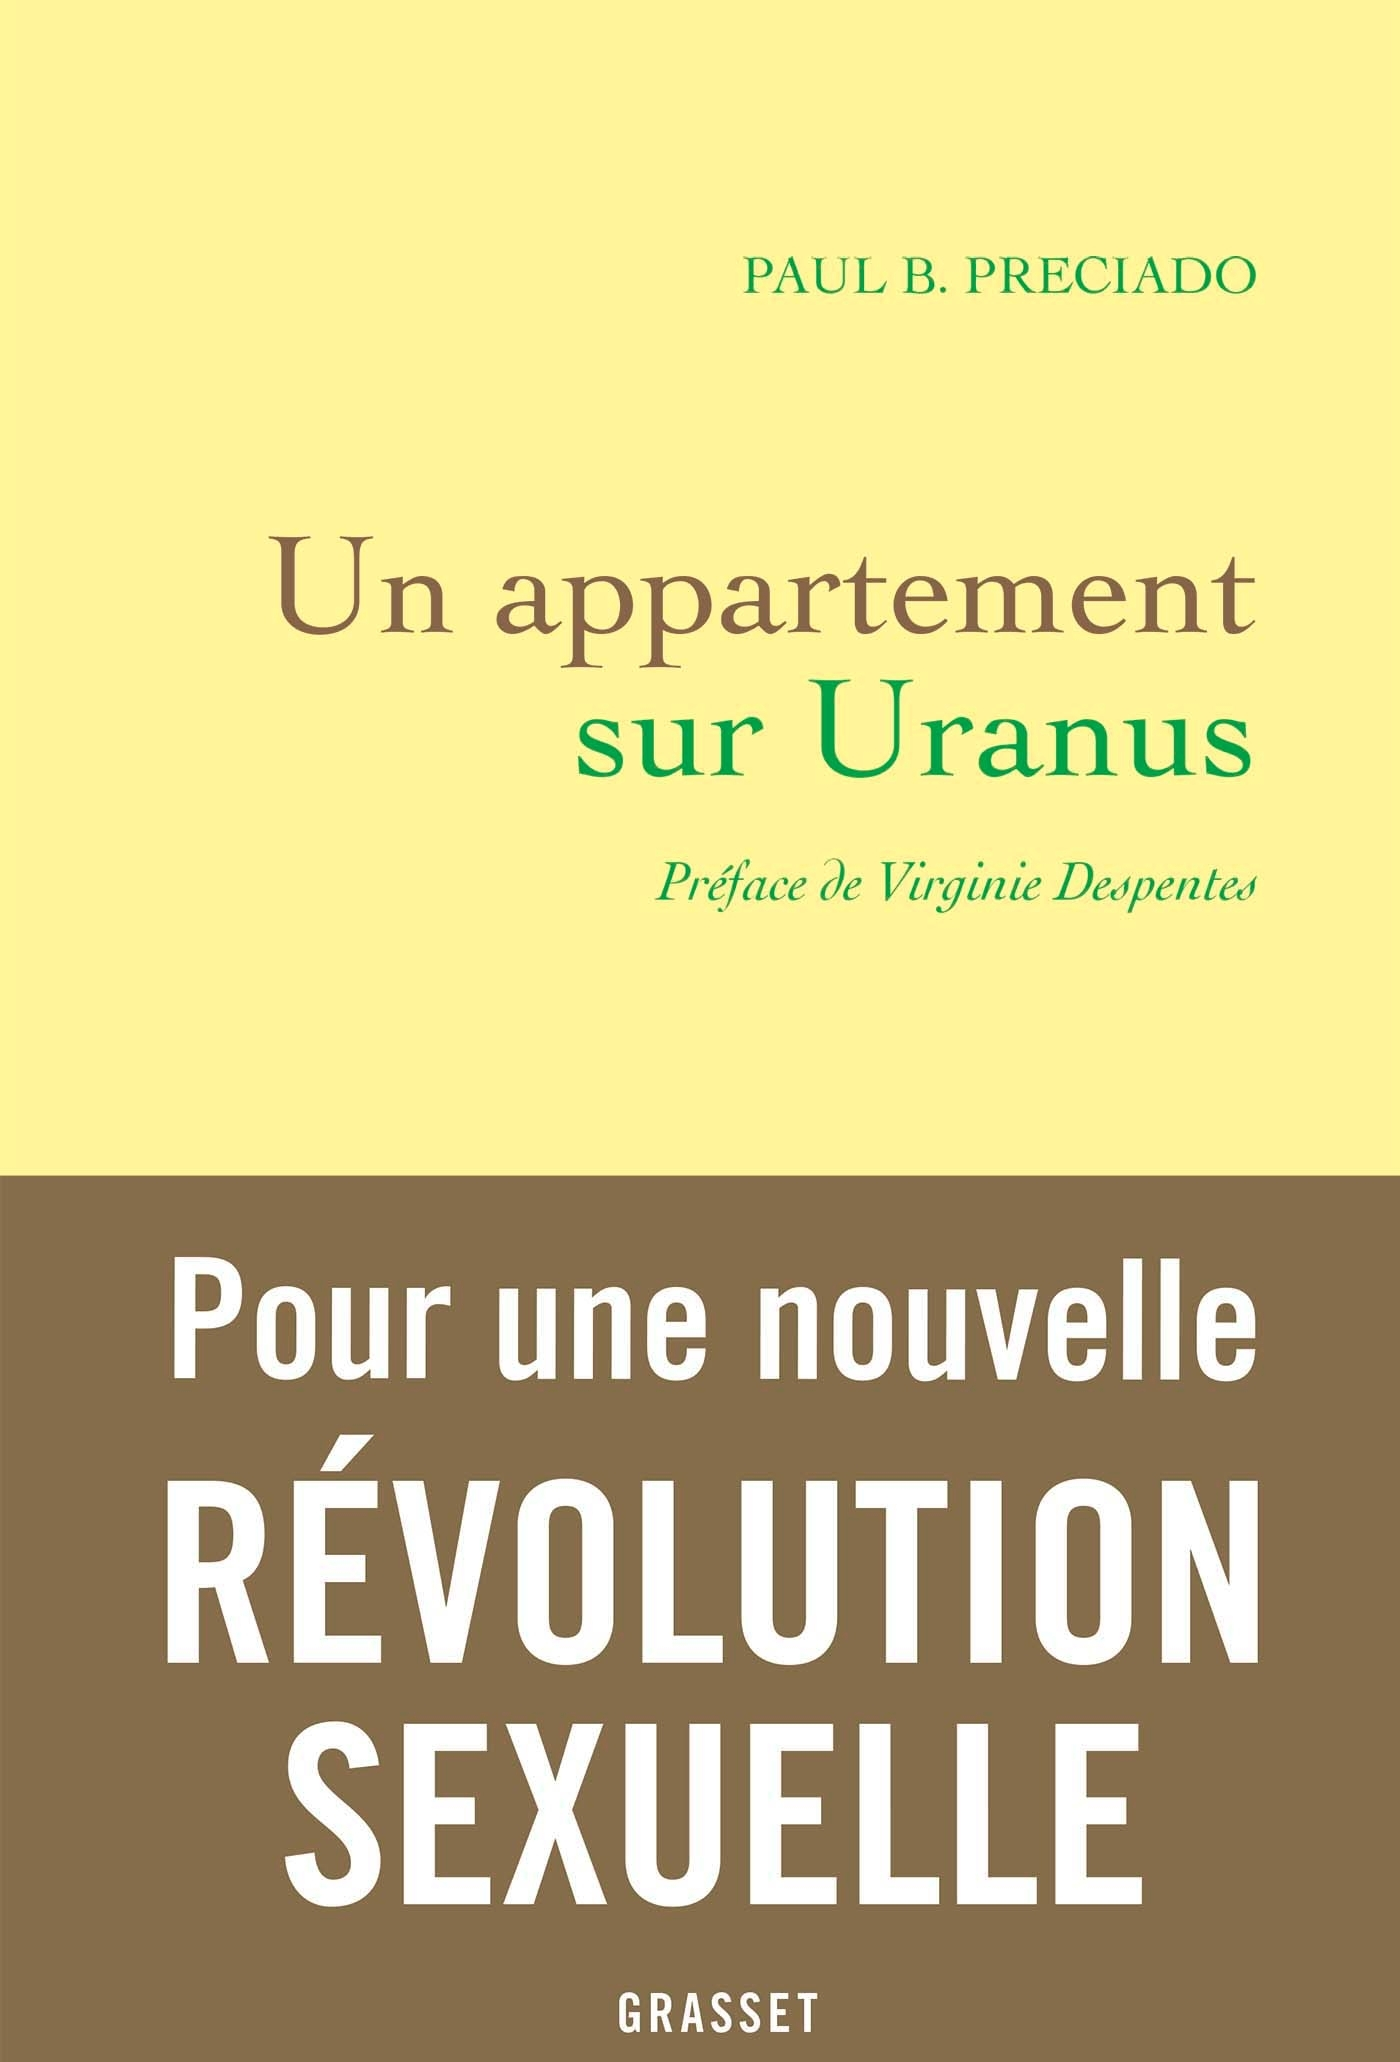 UN APPARTEMENT SUR URANUS - PREFACE DE VIRGINIE DESPENTES